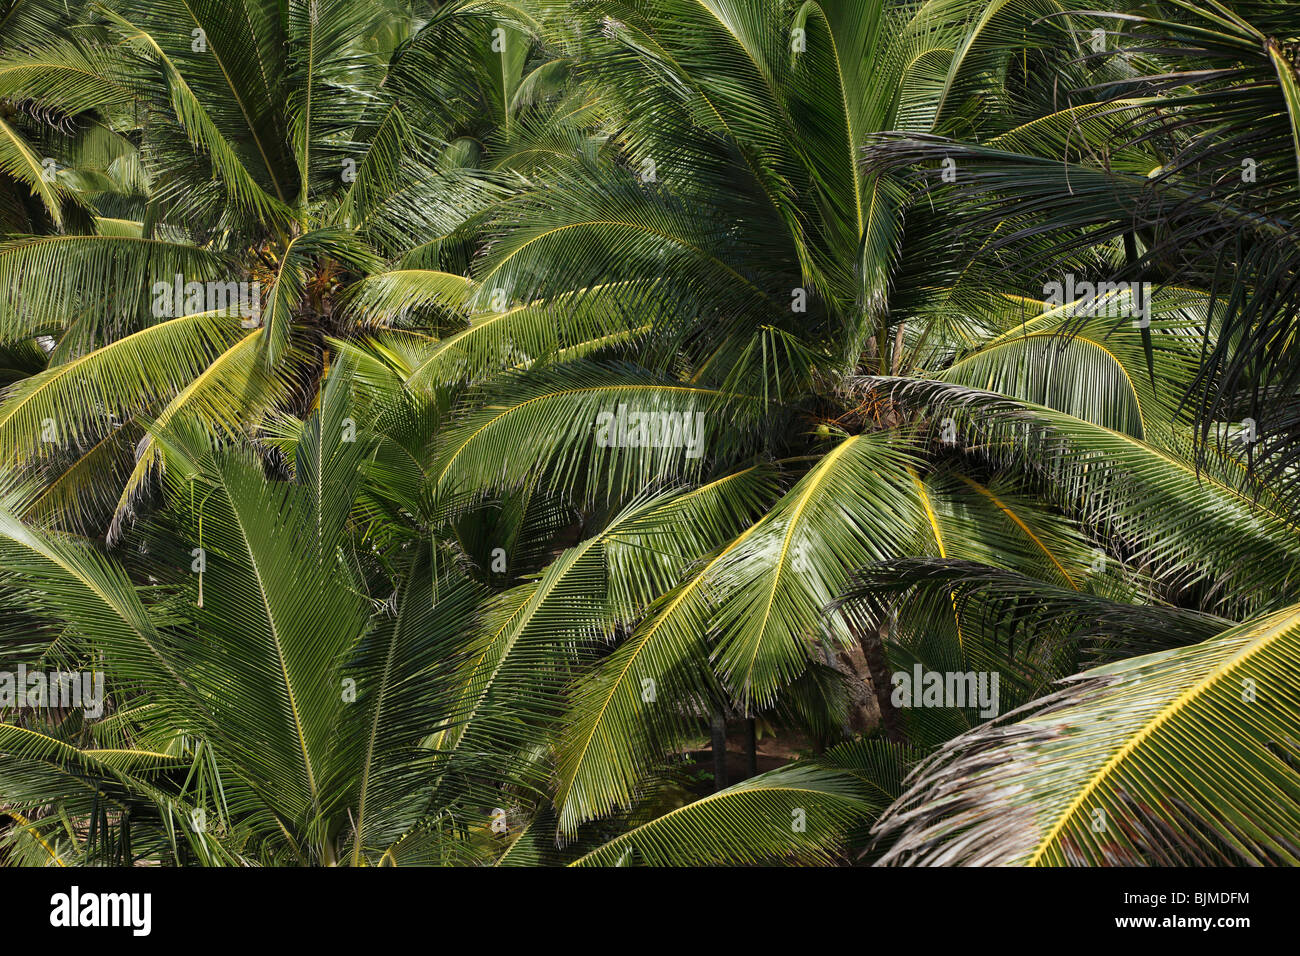 Coconut palms, Kerala, India, Asia - Stock Image